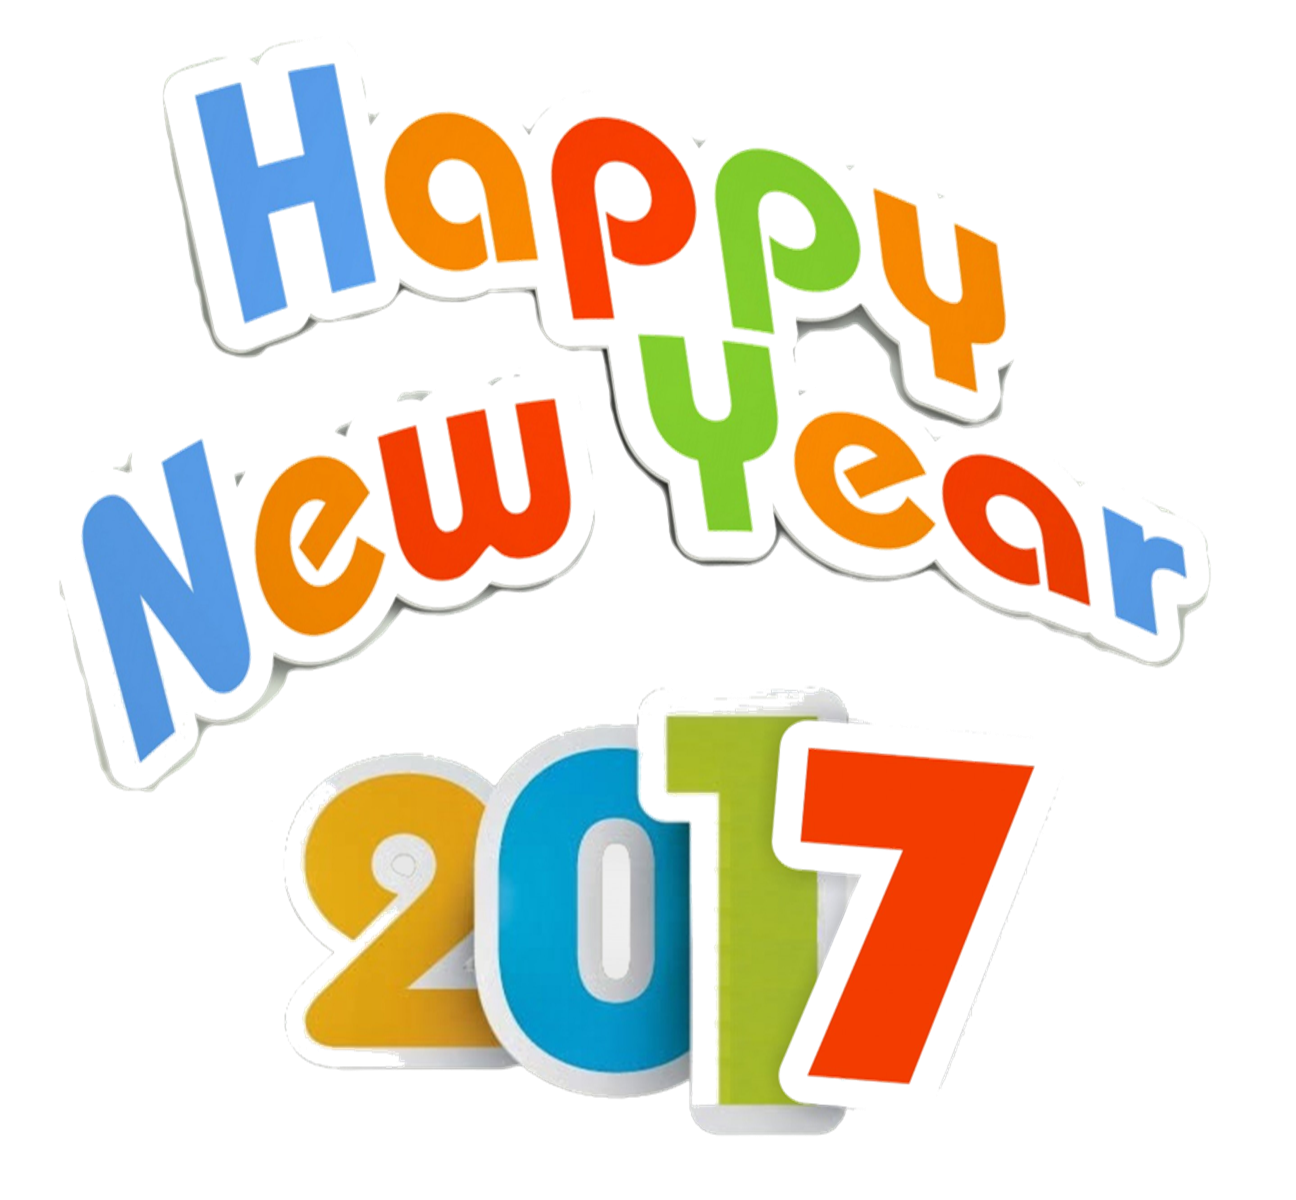 Free clipart new year 2016 picture transparent stock New years clipart 2016 clipart images gallery for free download ... picture transparent stock